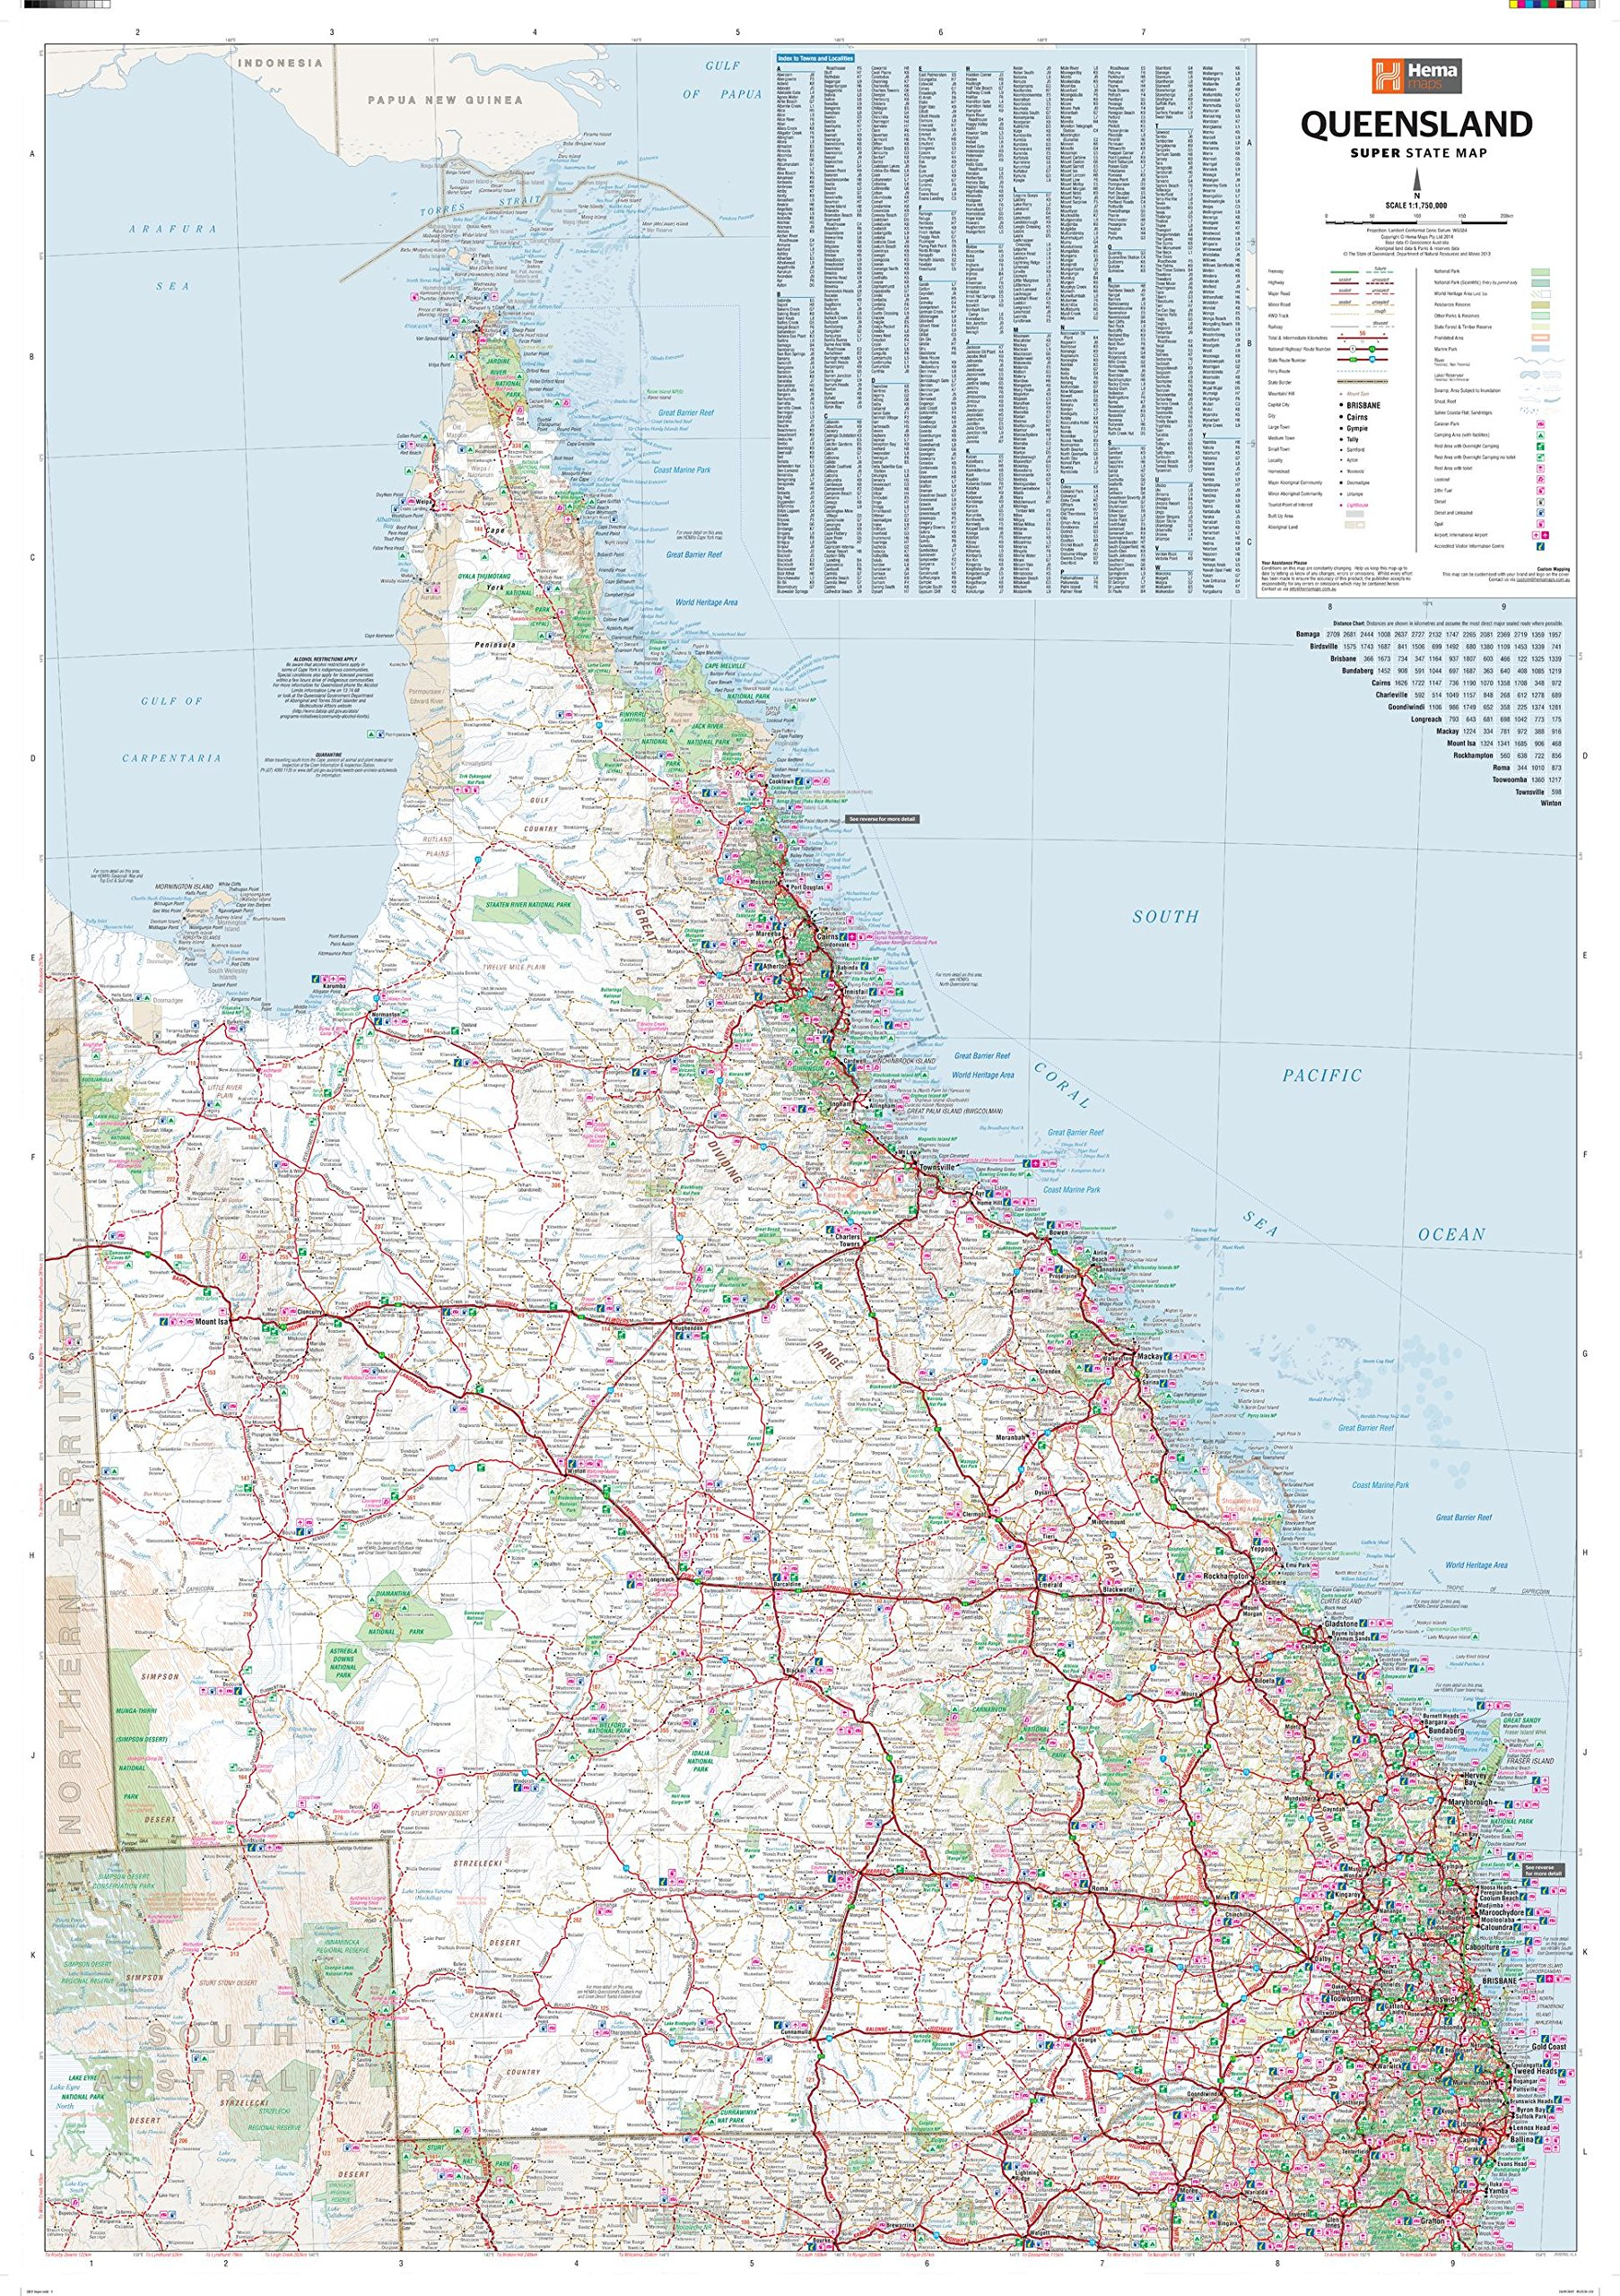 Download Queensland Supermap - 40.5 x 57.5 inches - Paper - Flat Tubed PDF